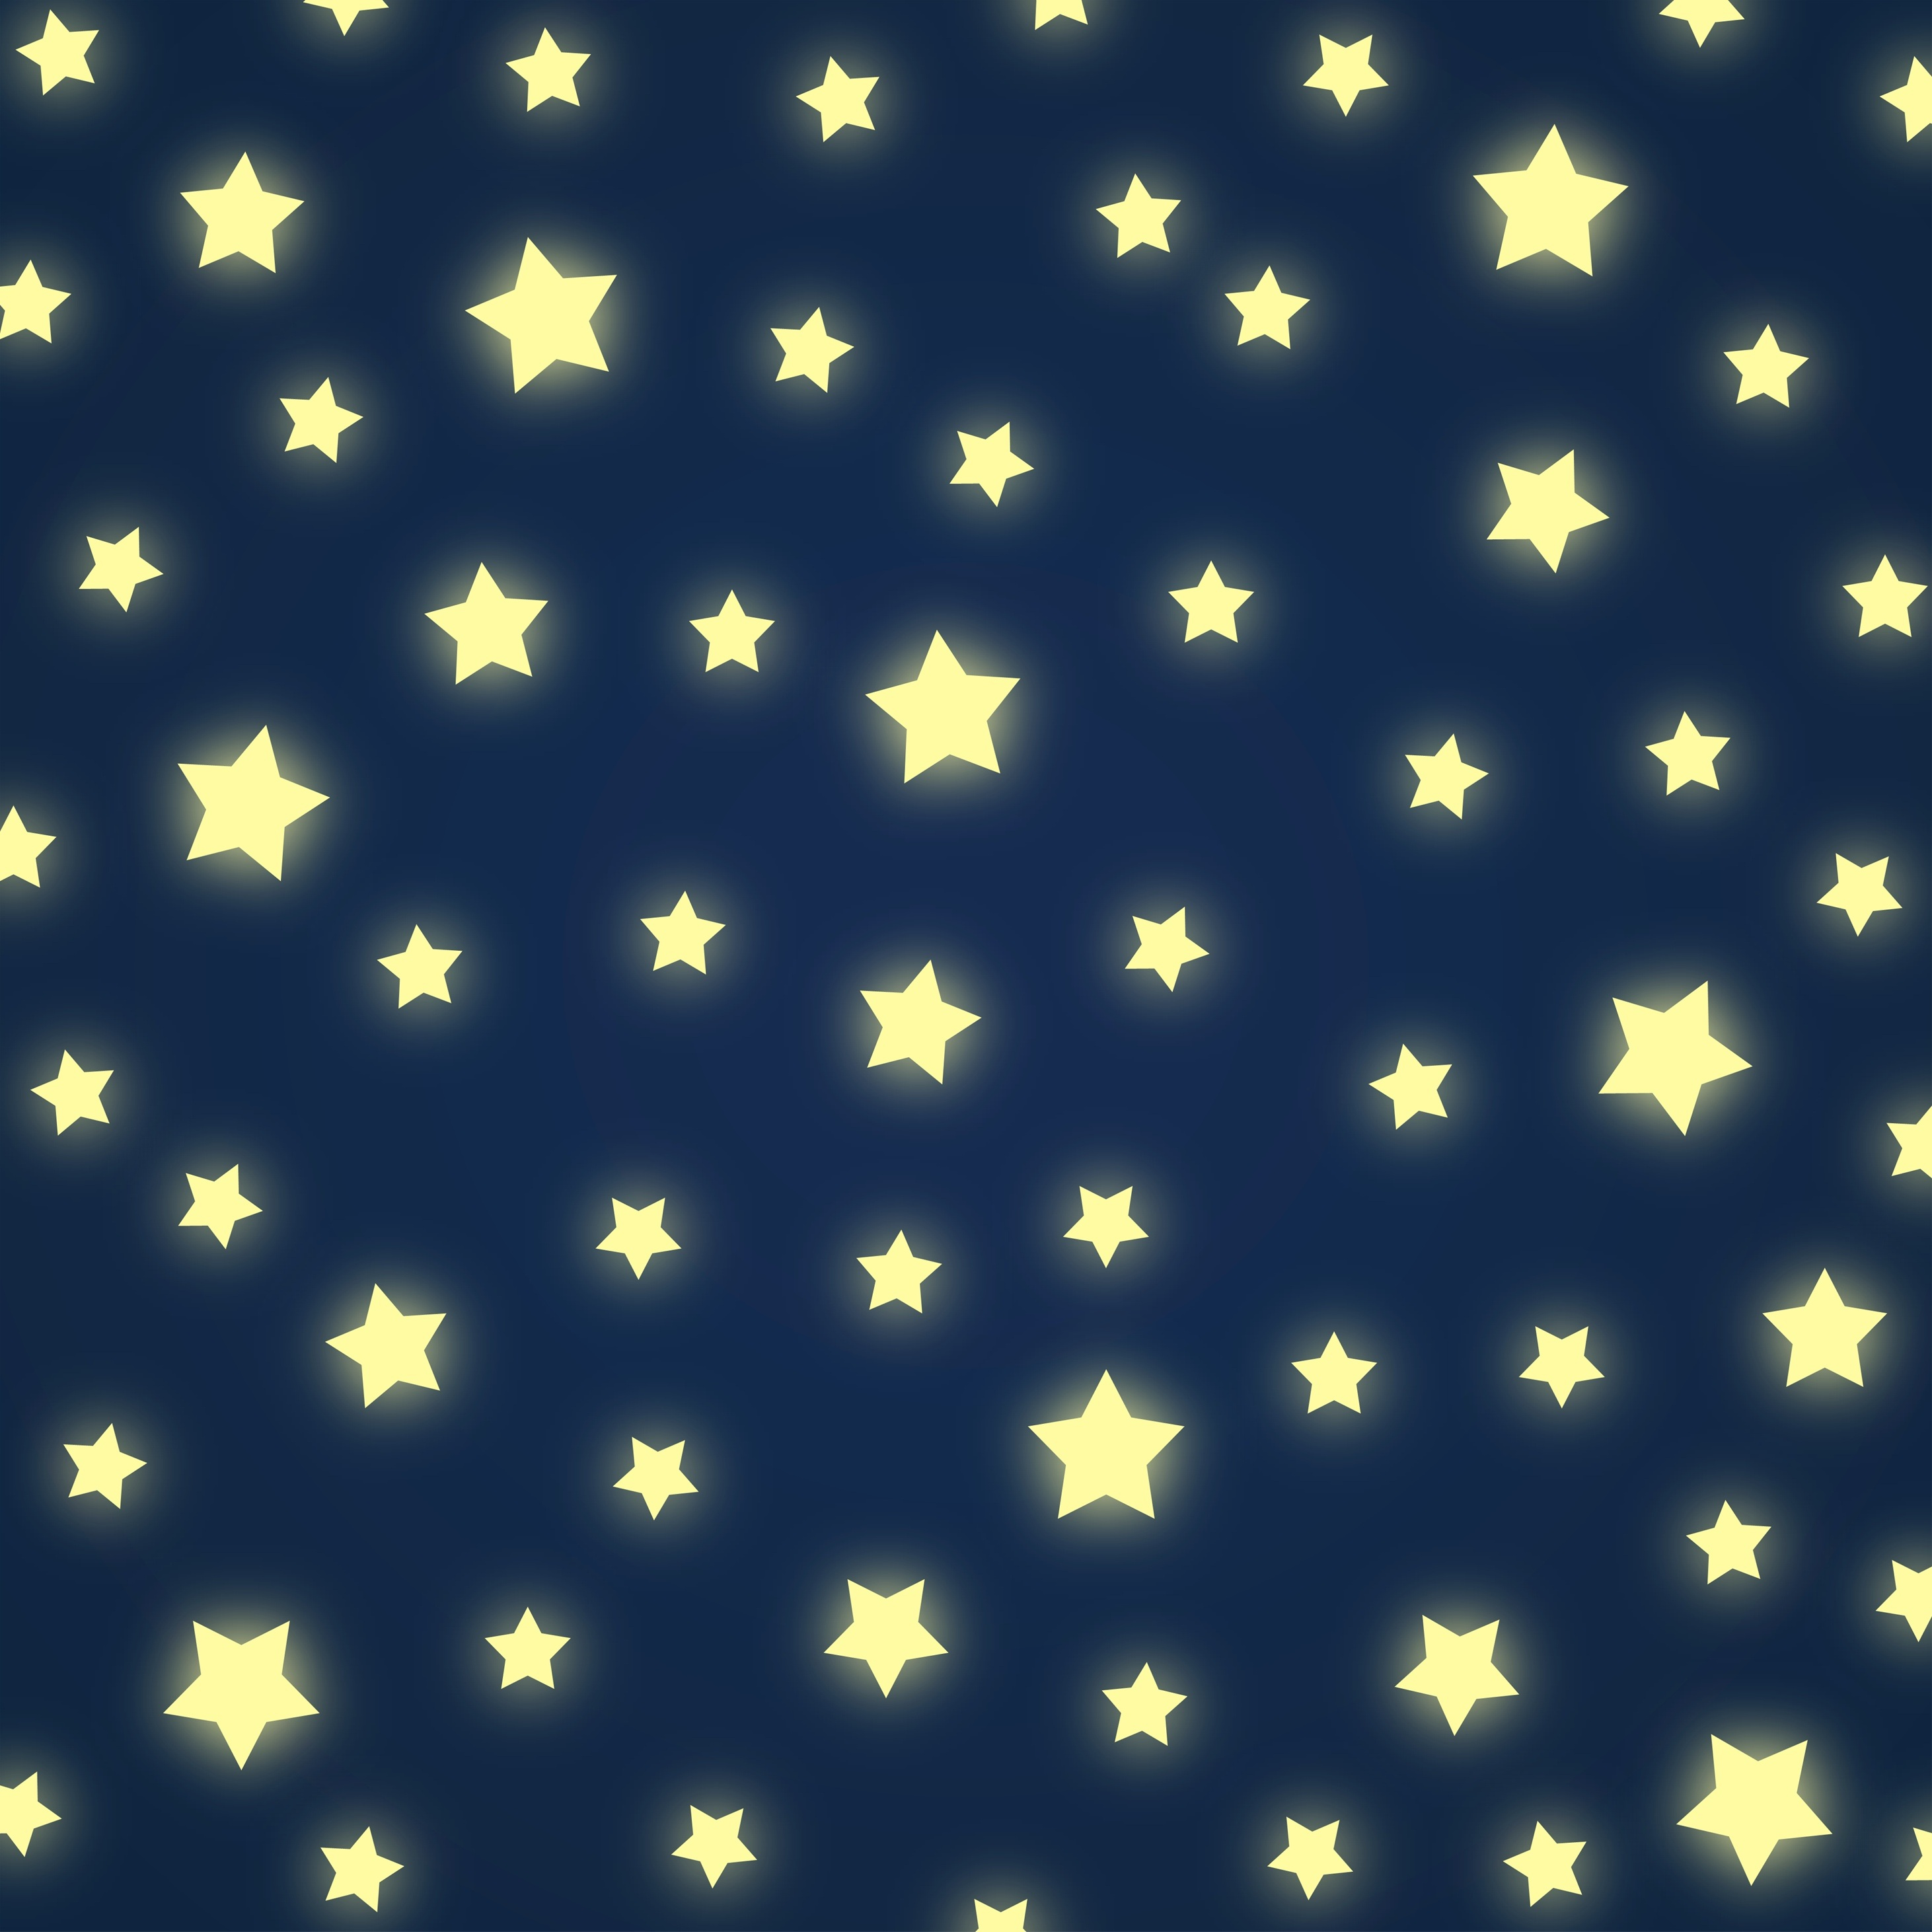 58289 download wallpaper Textures, Texture, Pattern, Shining, Background, Stars screensavers and pictures for free